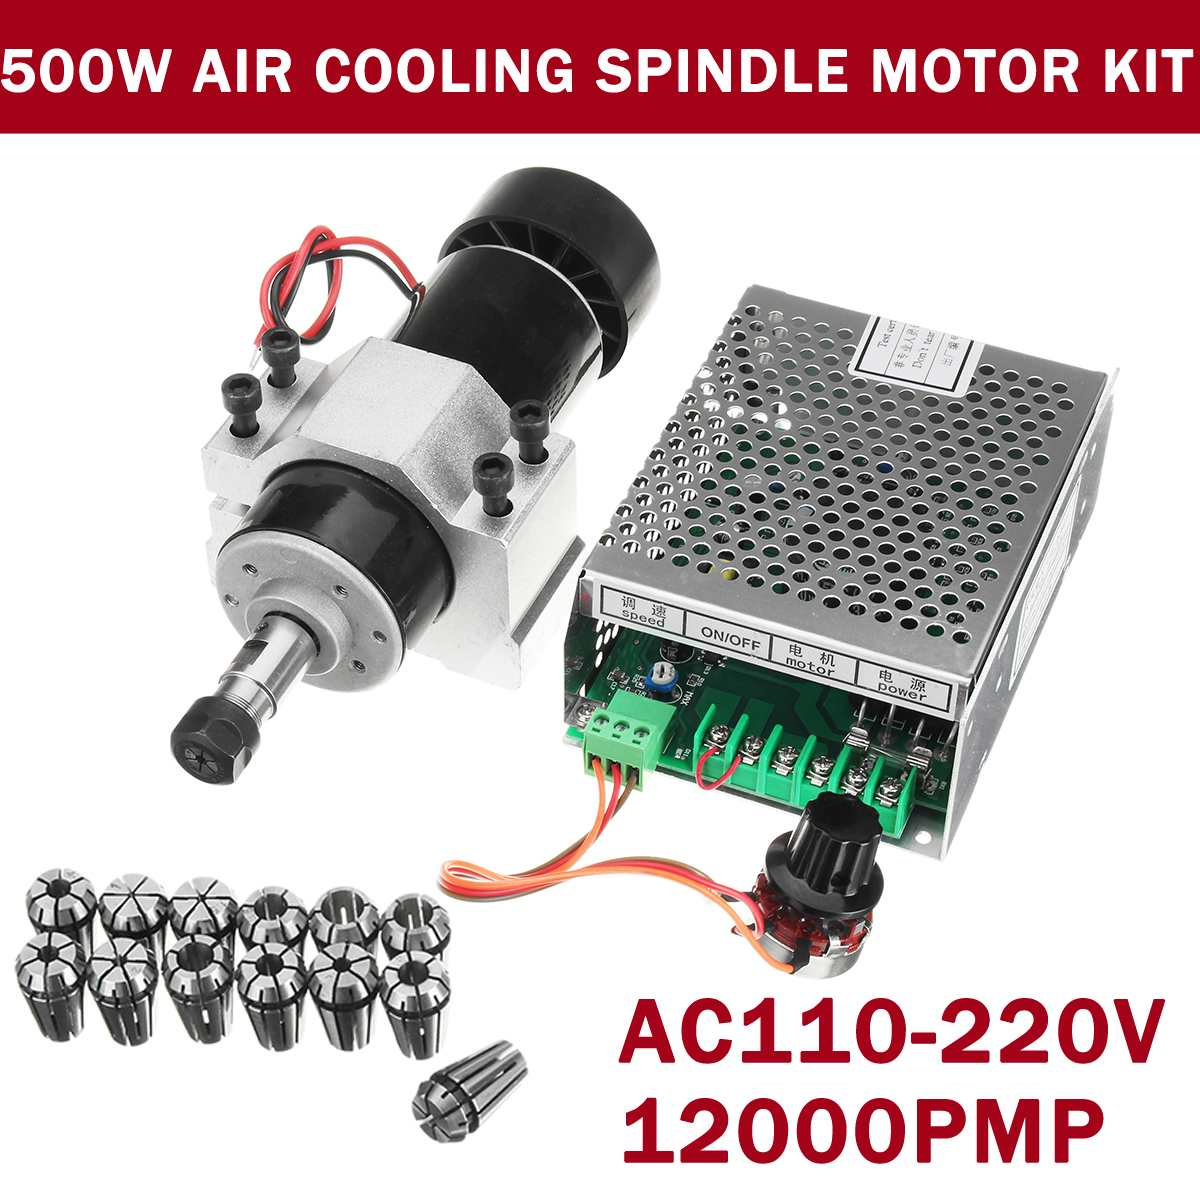 500W CNC Air Cooling Spindle Motor Engraving Machine Router+52mm Clamps+Speed Governor ER11 Collet Chuck For Engraving Machine er11 6mm 6 35mm 6 5mm 7mm 1 4 1 4 spring collet set for cnc engraving machine